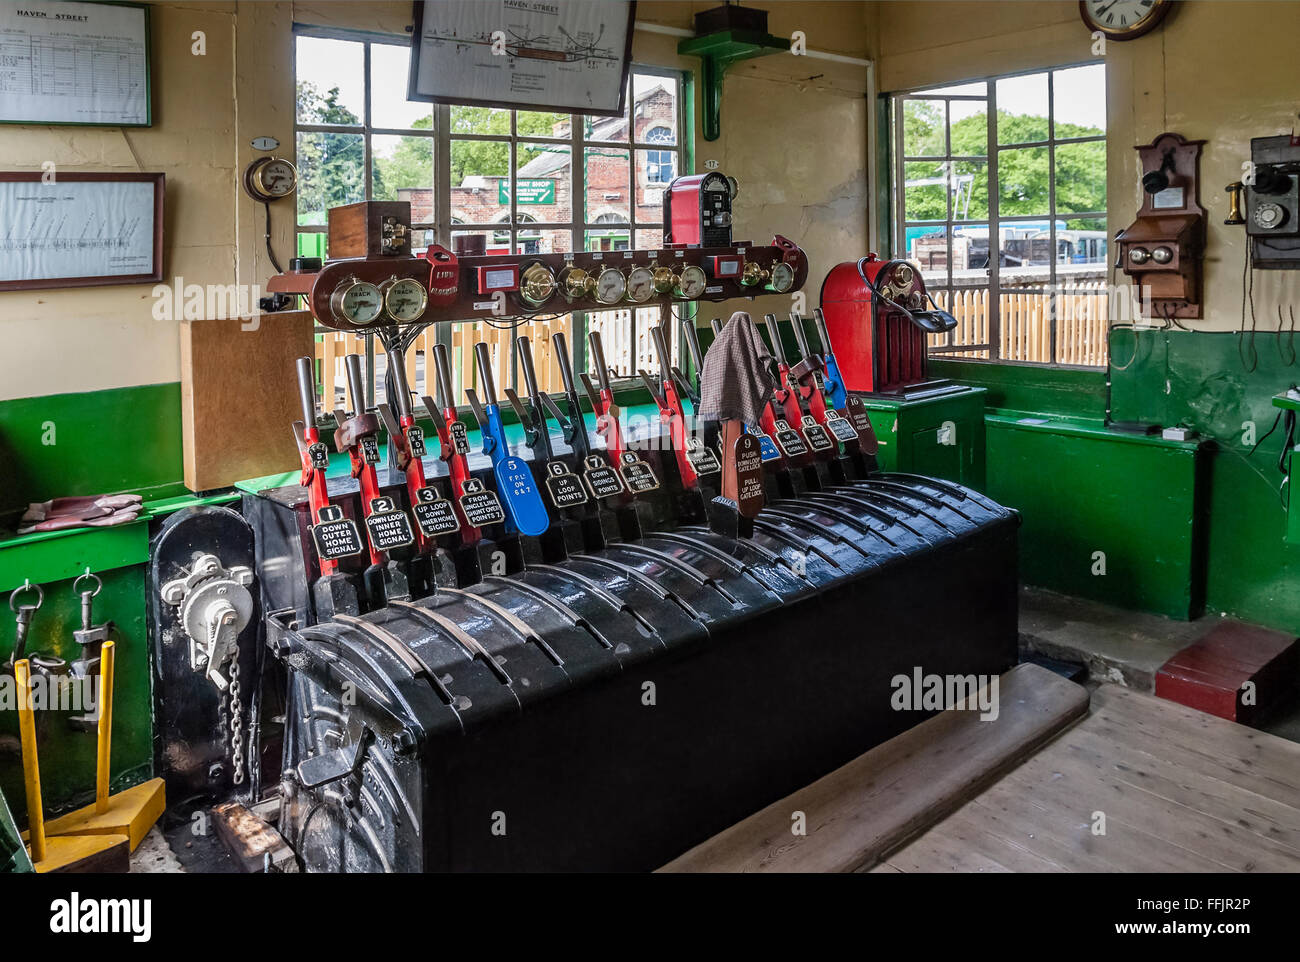 Historical signal box at the Havenstreet Station of the Isle of Wight Steam Railway Line, South East England. - Stock Image